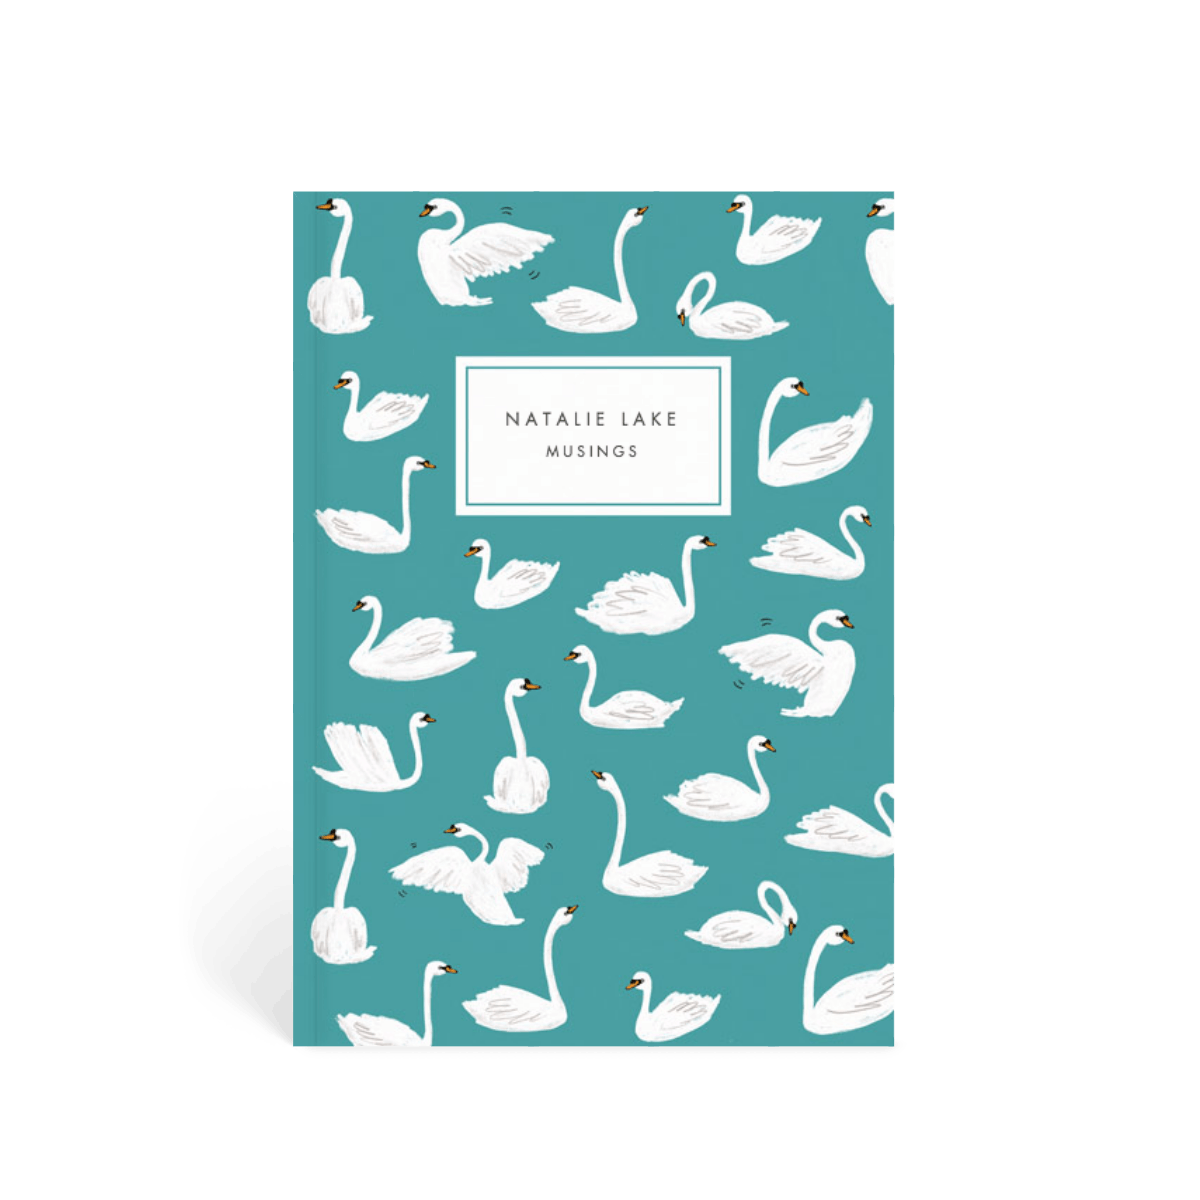 Https%3a%2f%2fwww.papier.com%2fproduct image%2f42077%2f25%2fblue swans 10734 front 1535021673.png?ixlib=rb 1.1